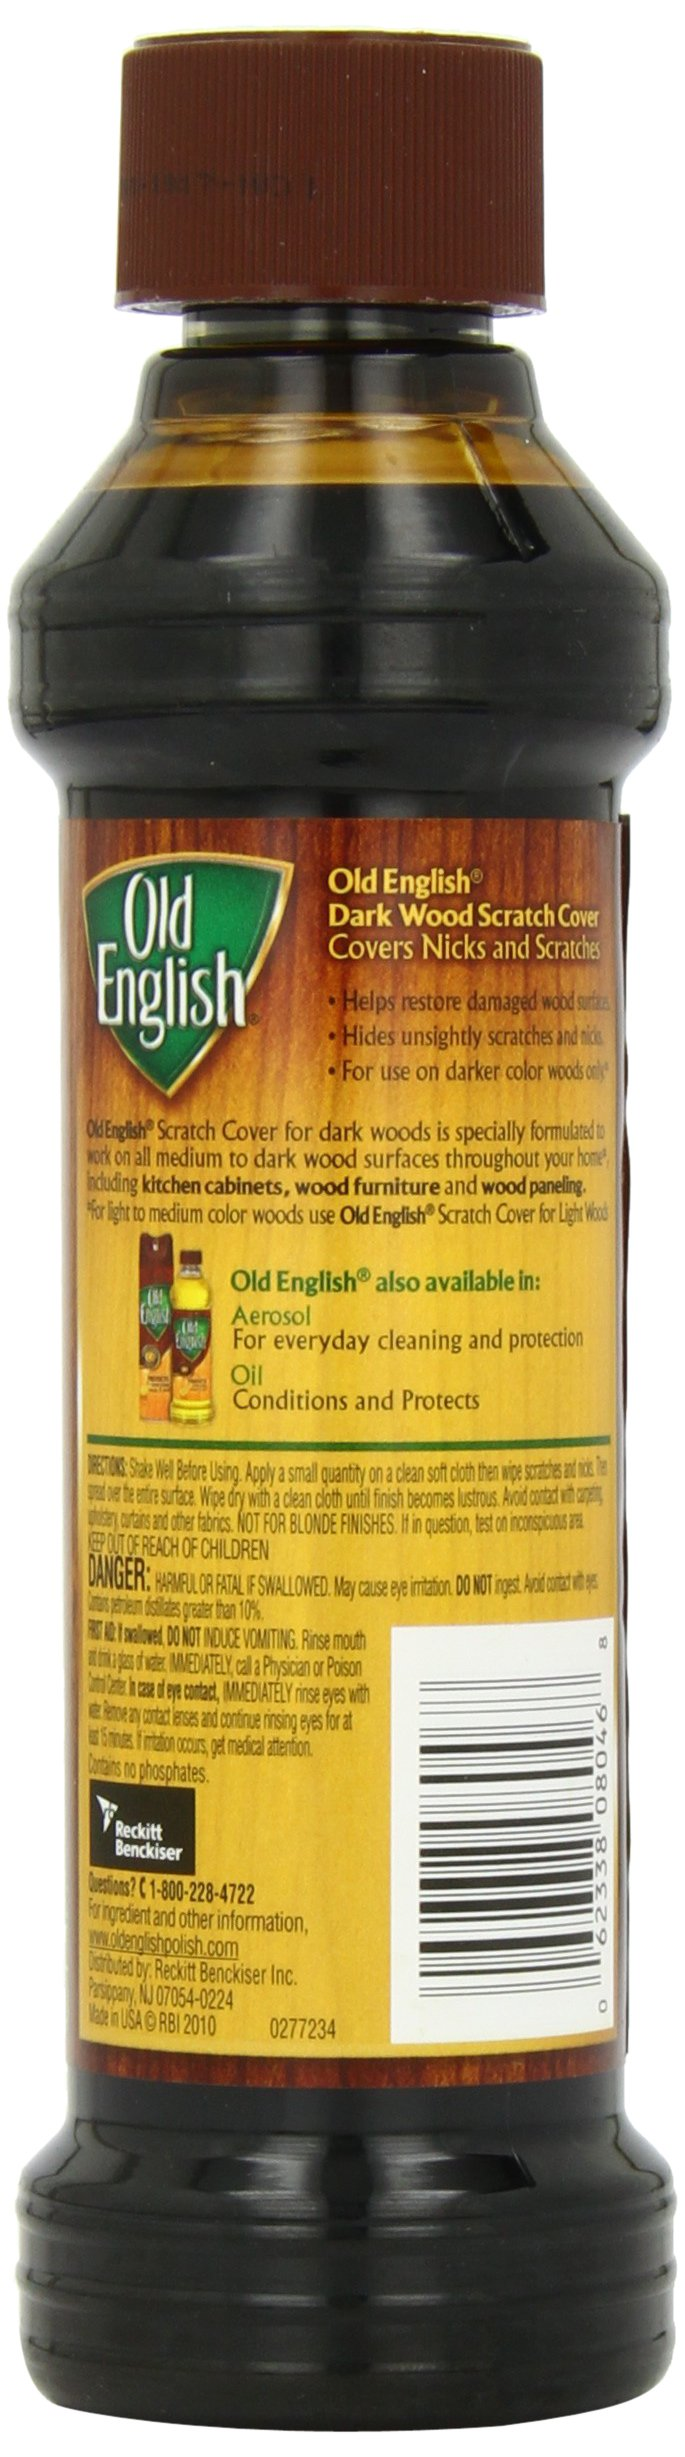 Galleon Old English Scratch Cover For Dark Wood 8 Ounce